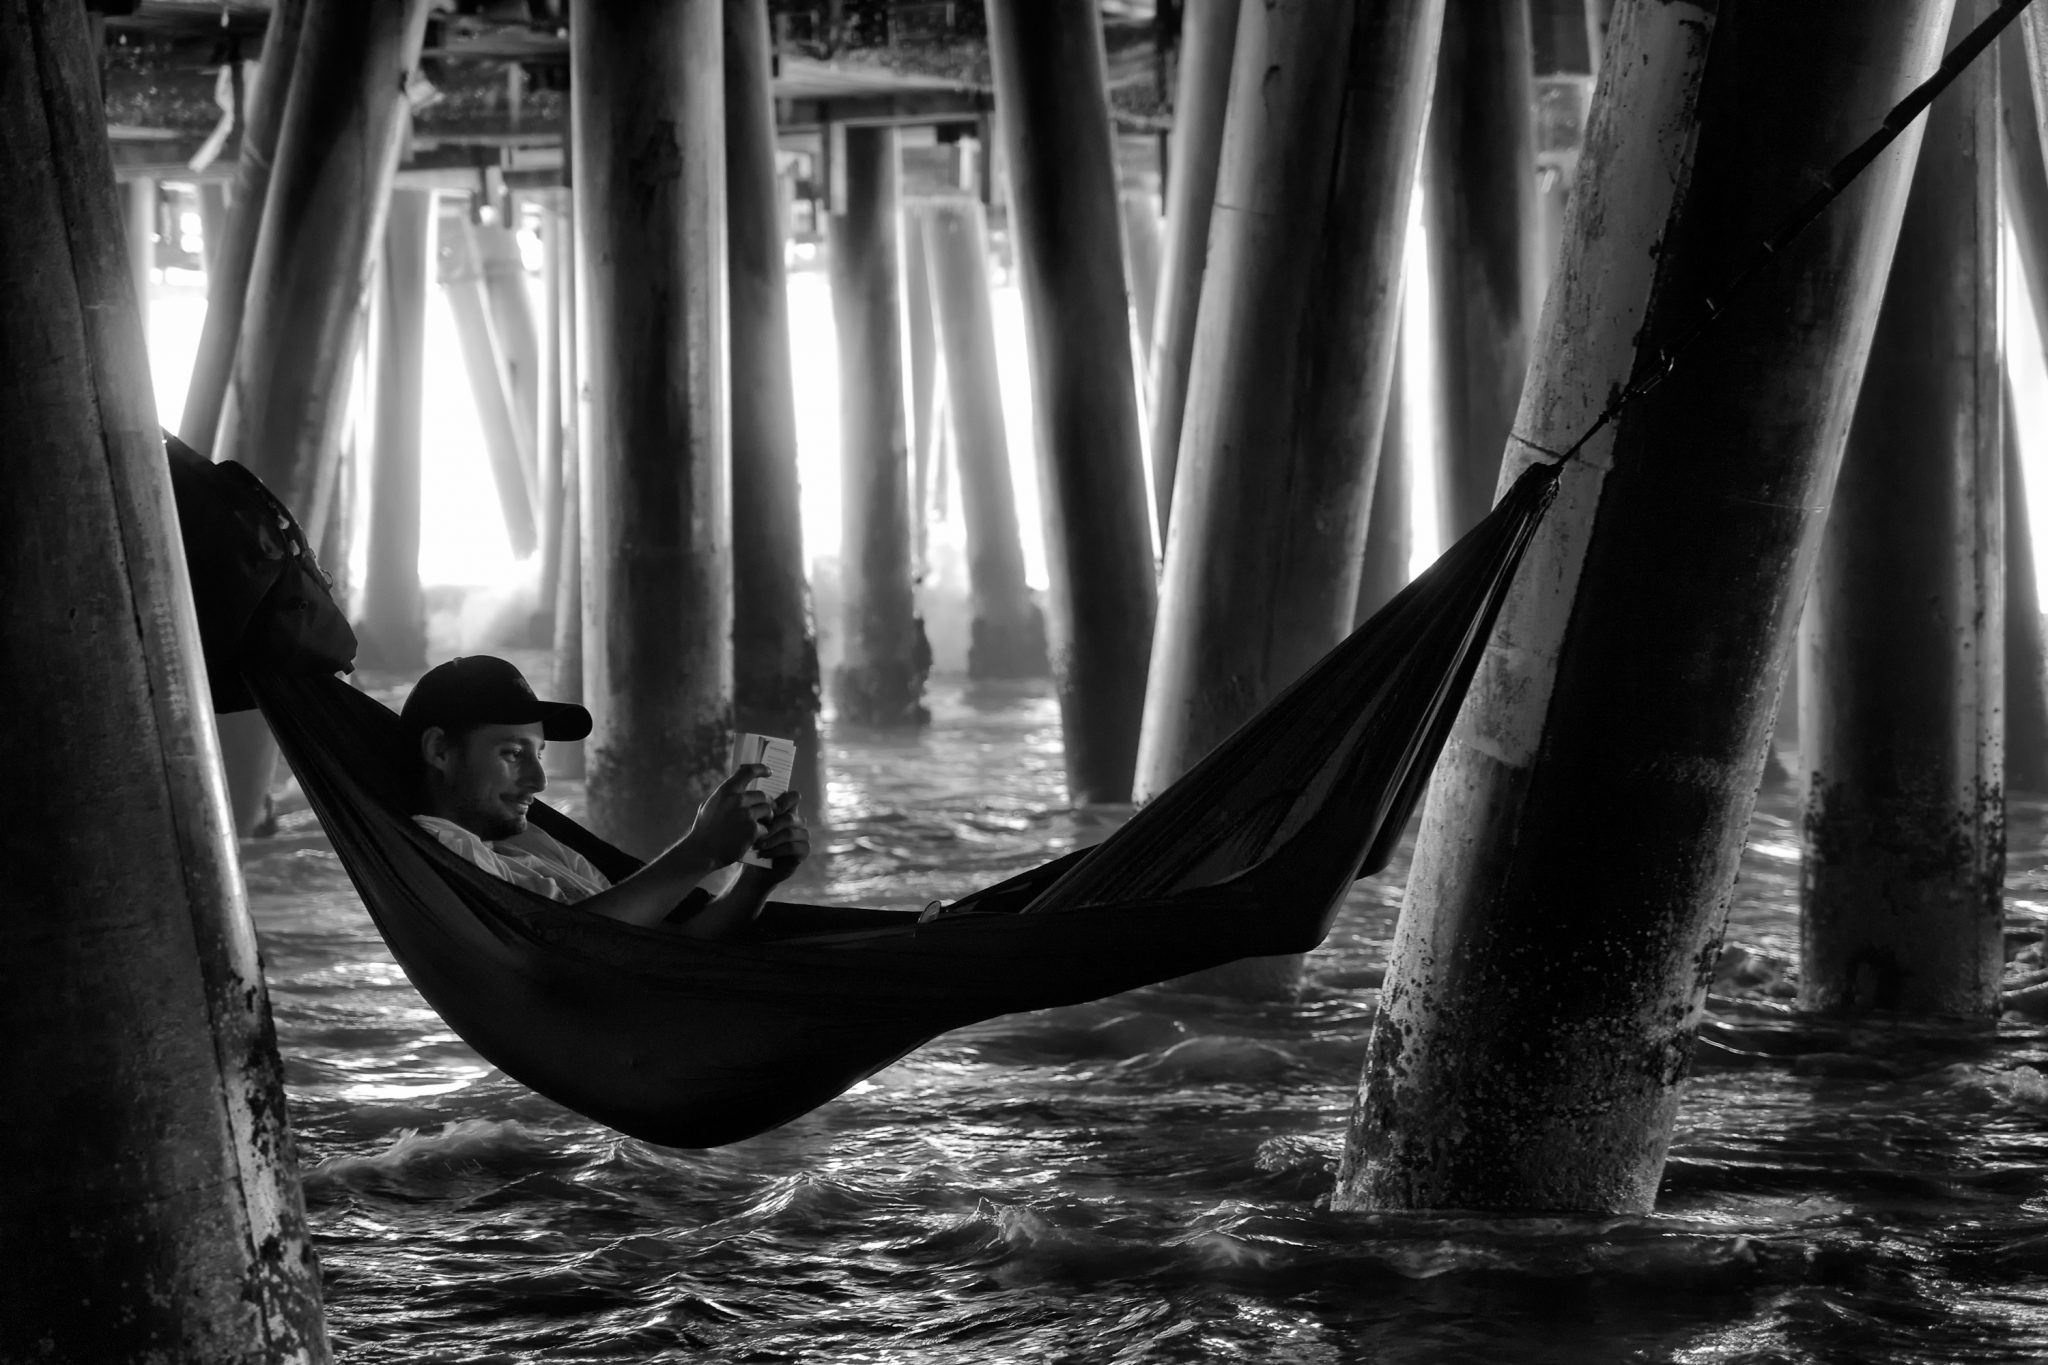 Under the Pier, Santa Monica, CA